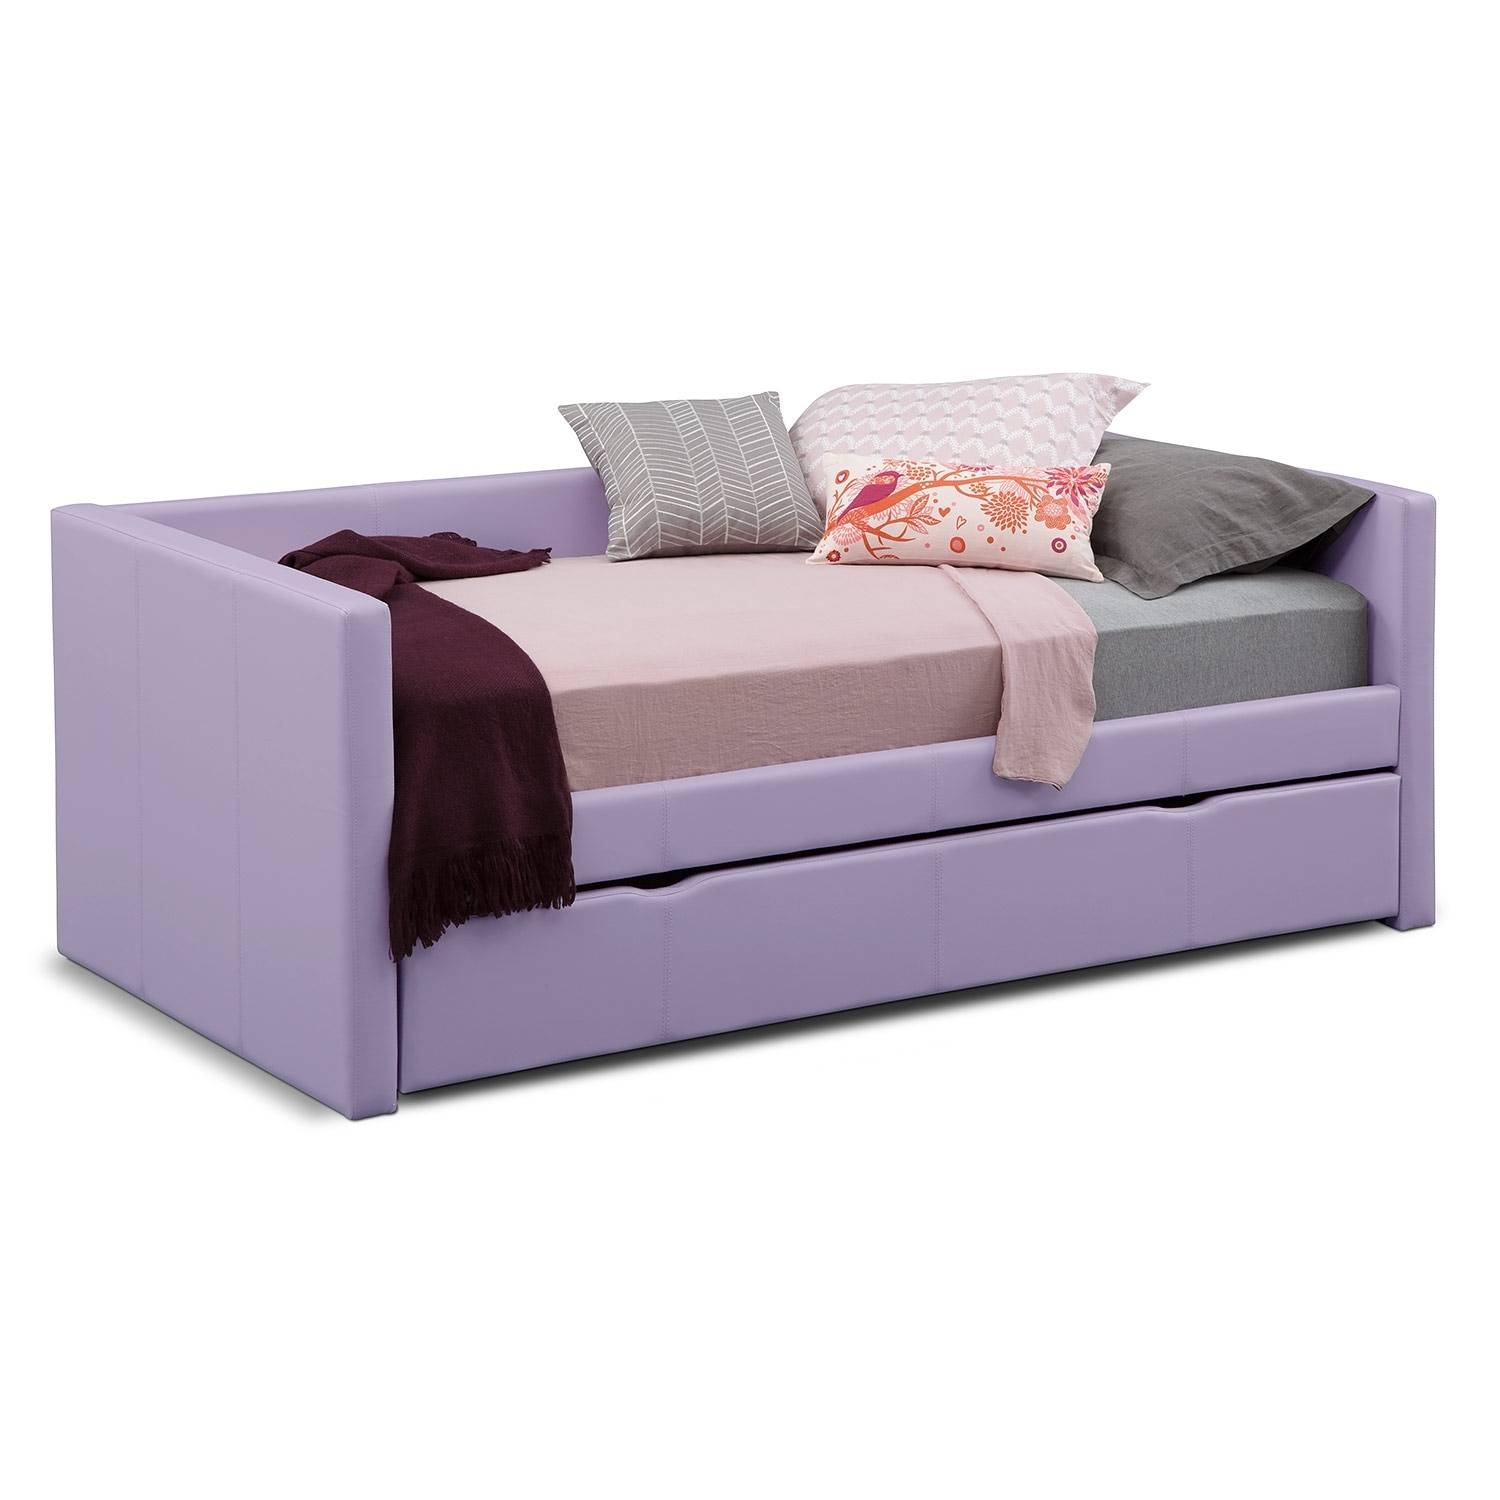 Daybeds & Trundle Beds | Bedroom Furniture | Value City Furniture Throughout Sofas Daybed With Trundle (View 4 of 15)